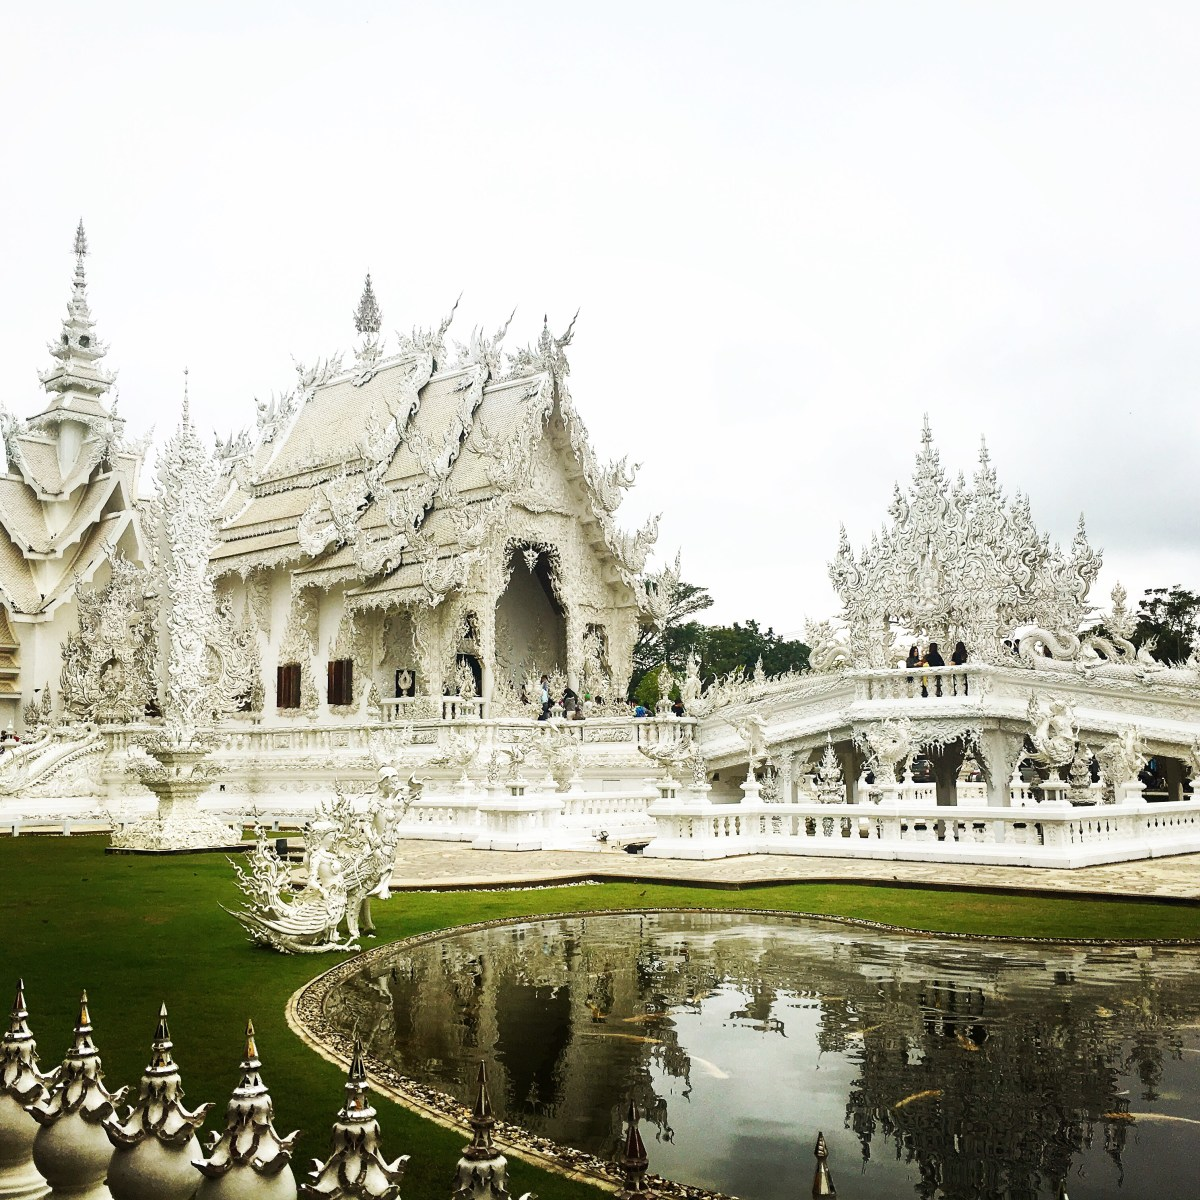 Chiang Rai – The White Temple